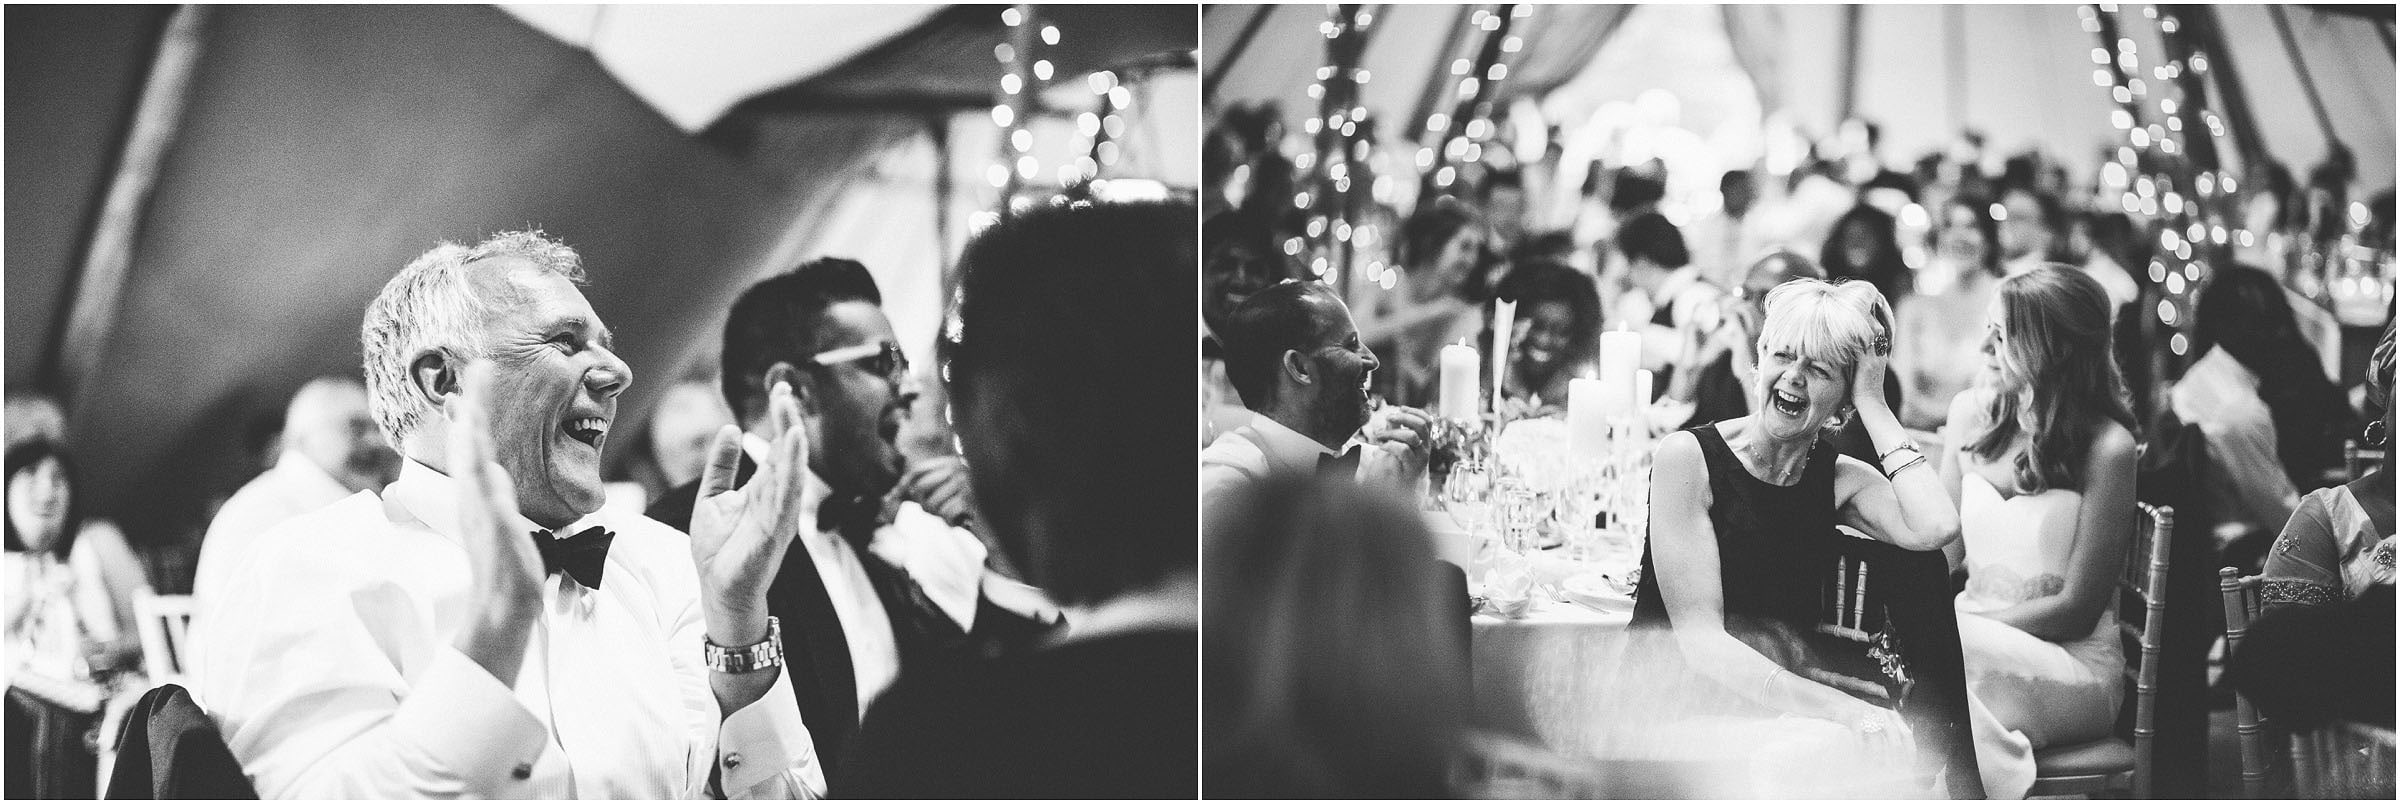 Underley_Grange_Wedding_Photography_0110